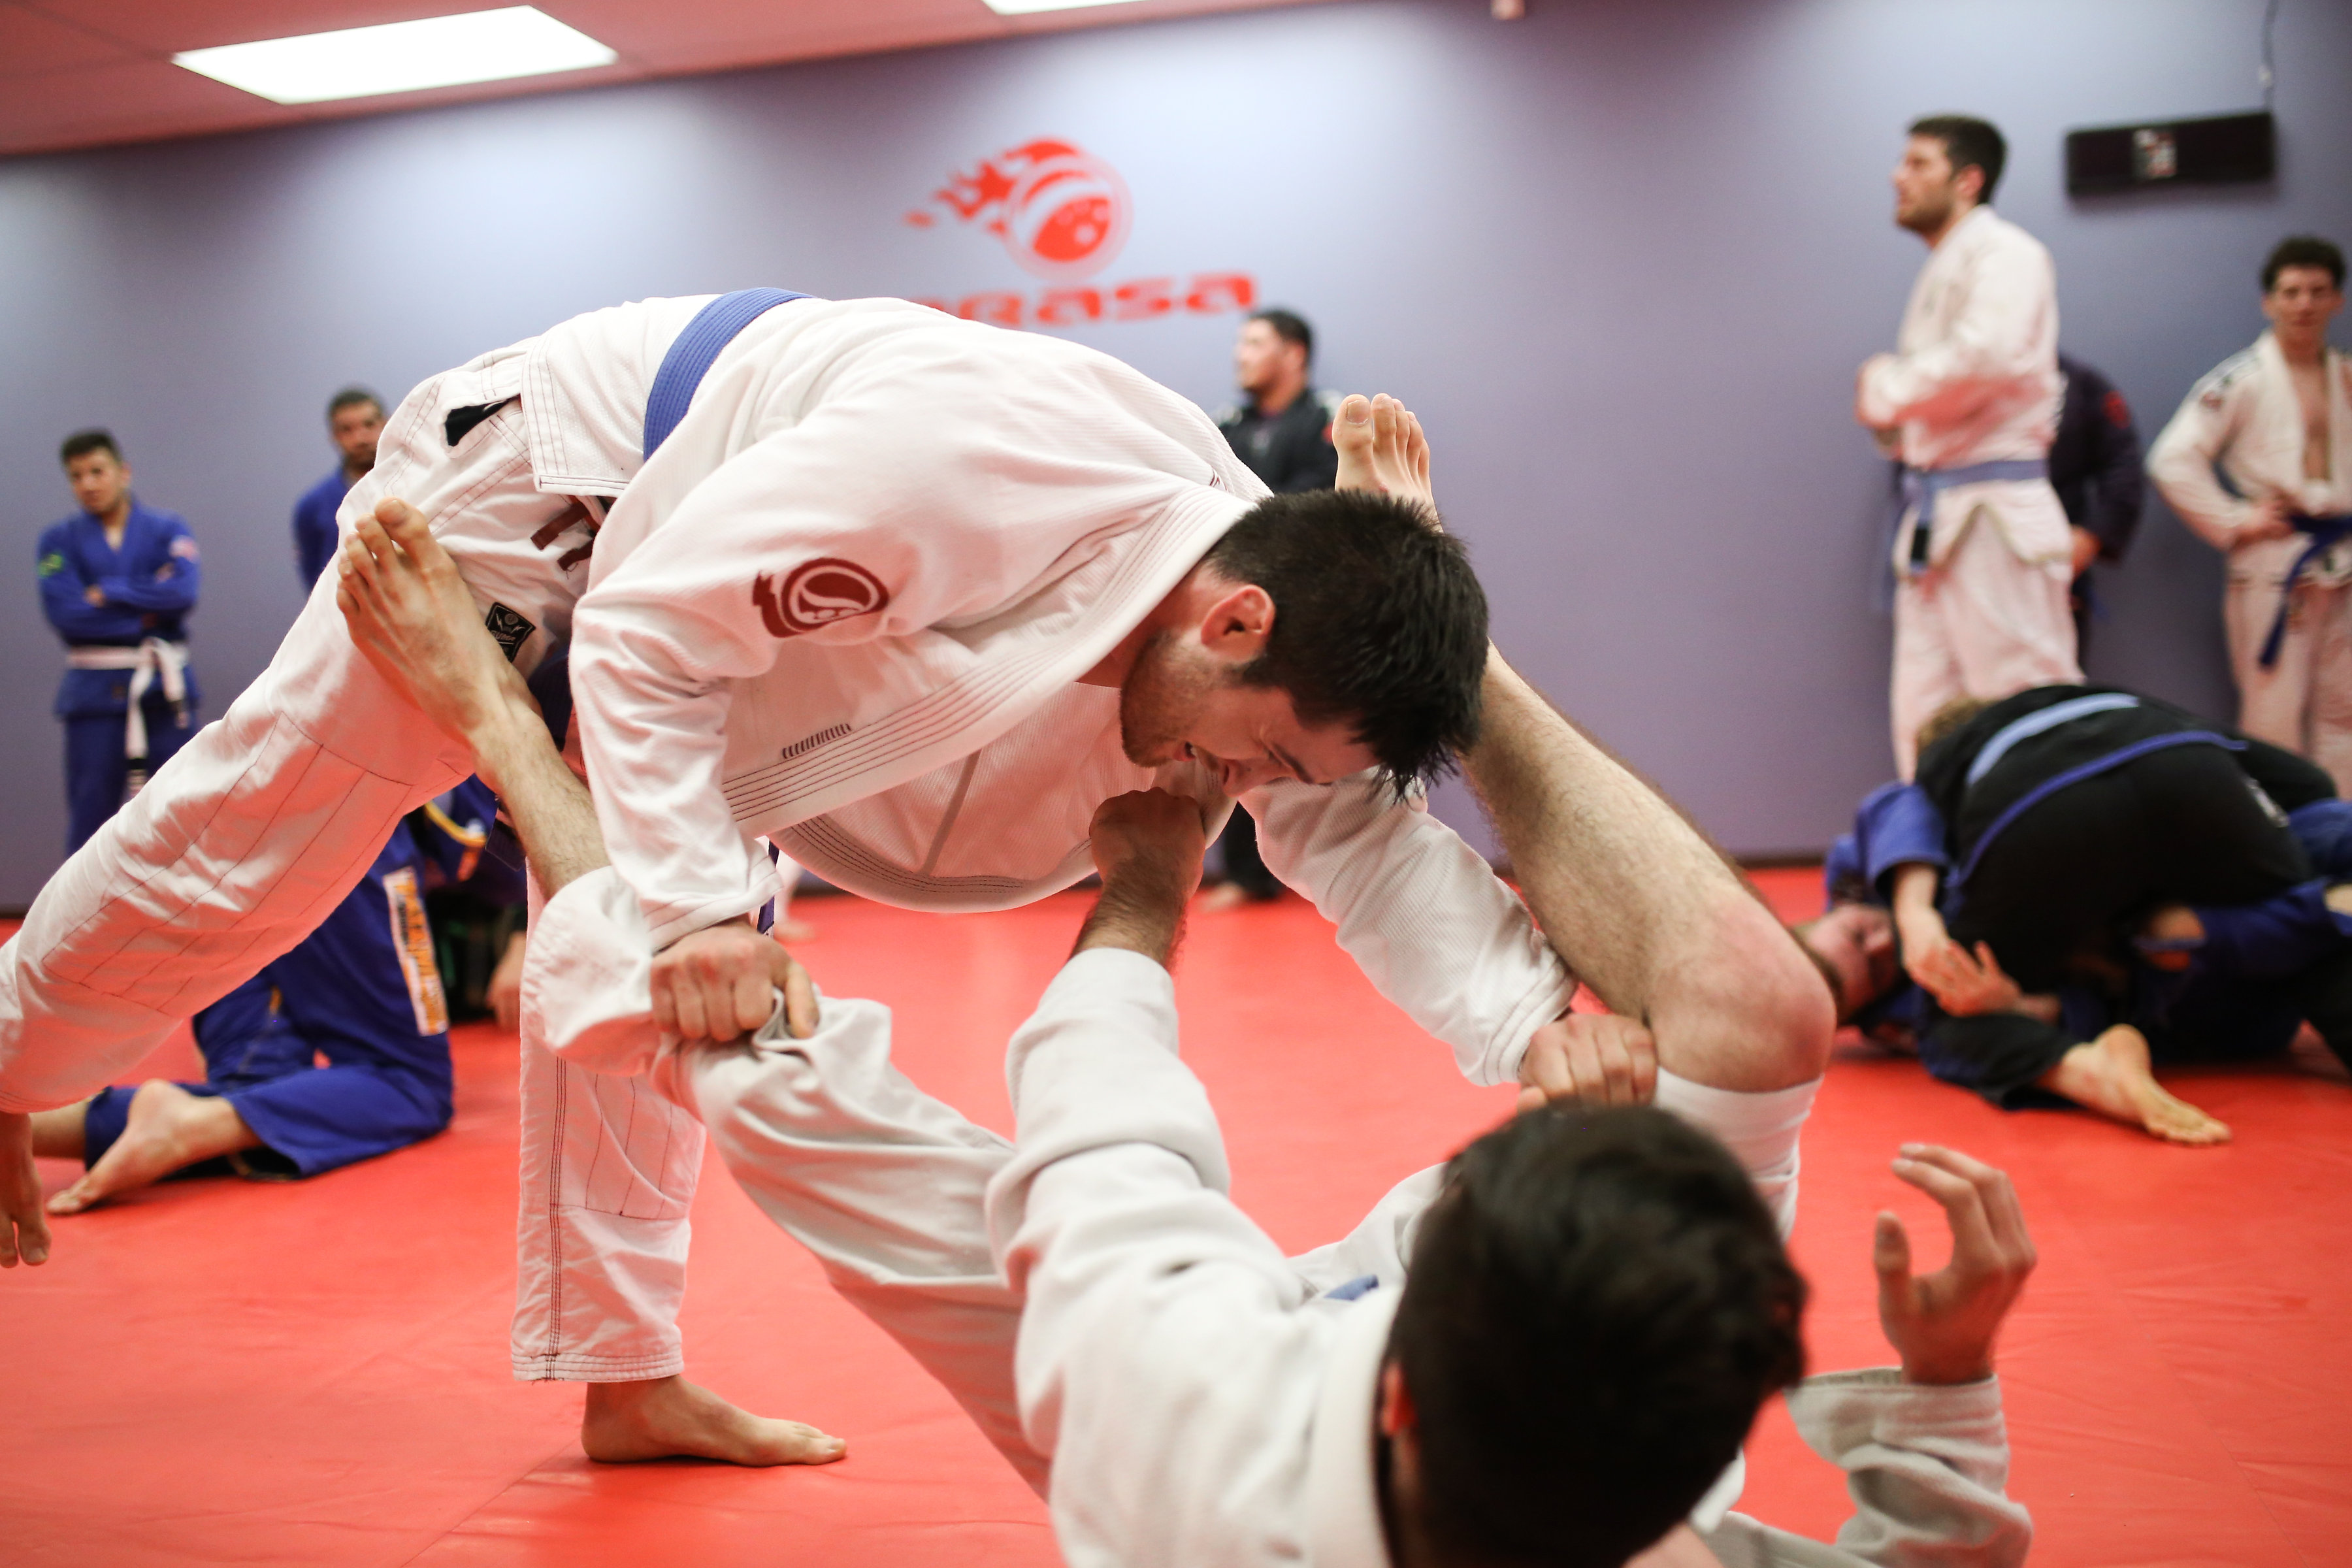 Ohio Brasa - What is jiu jitsu